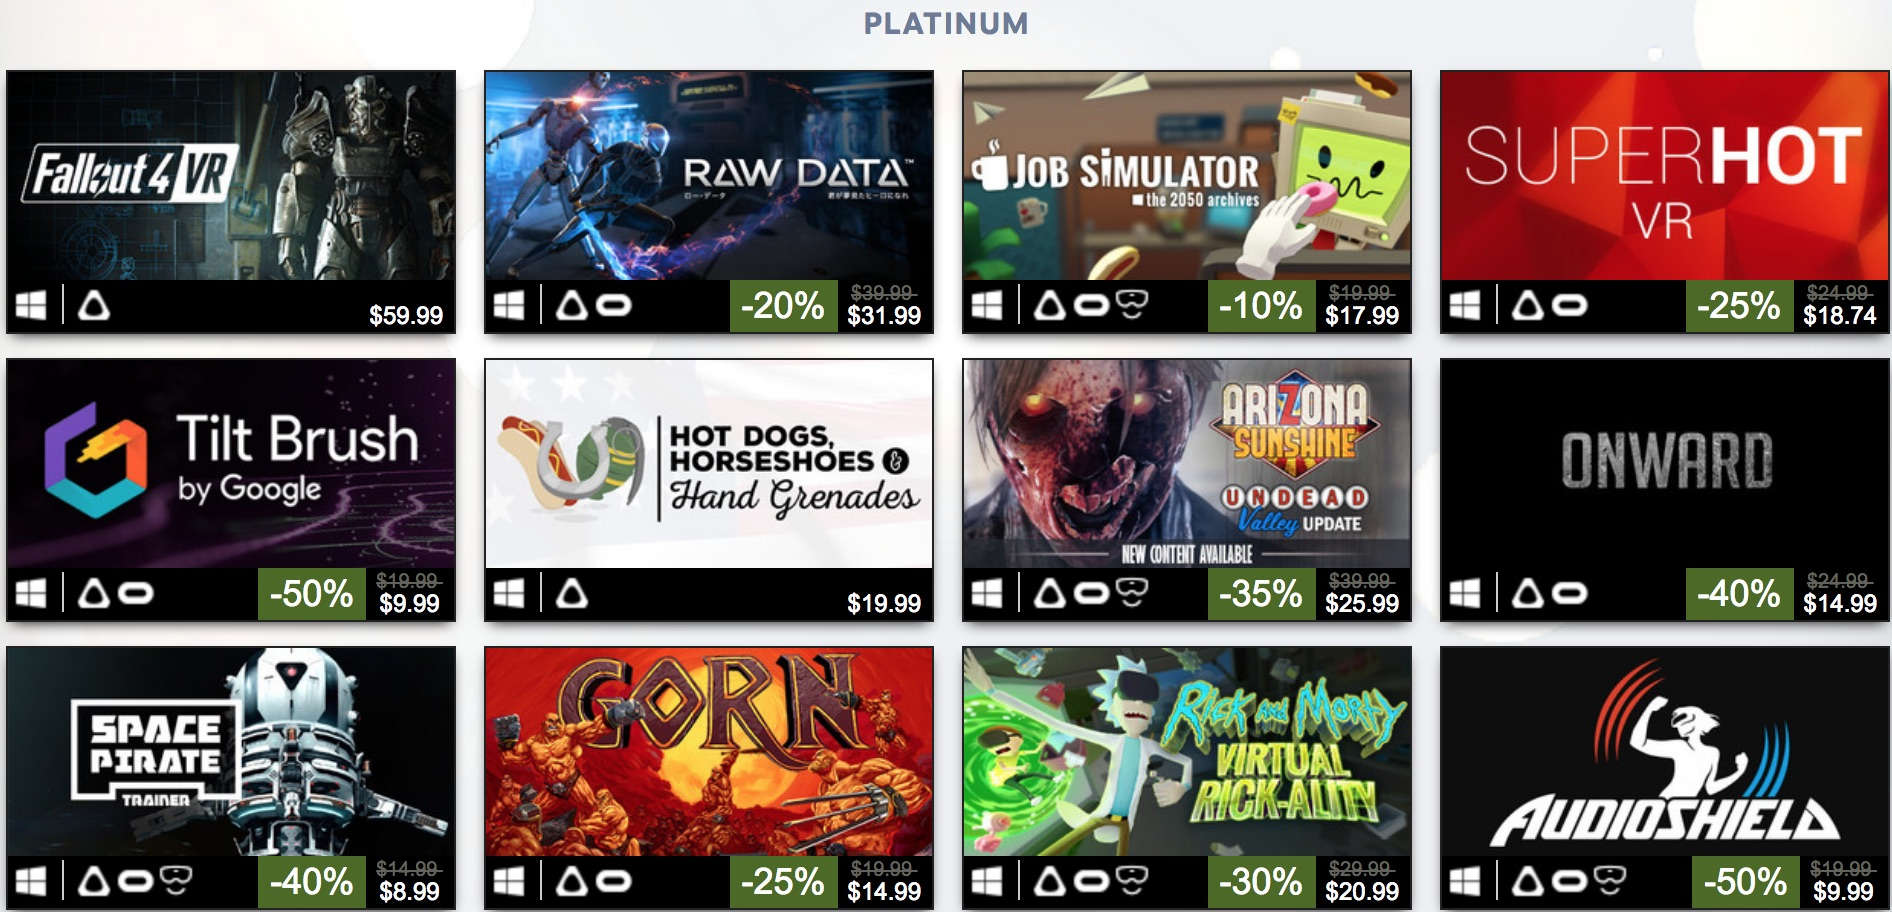 platinum vr games on steam